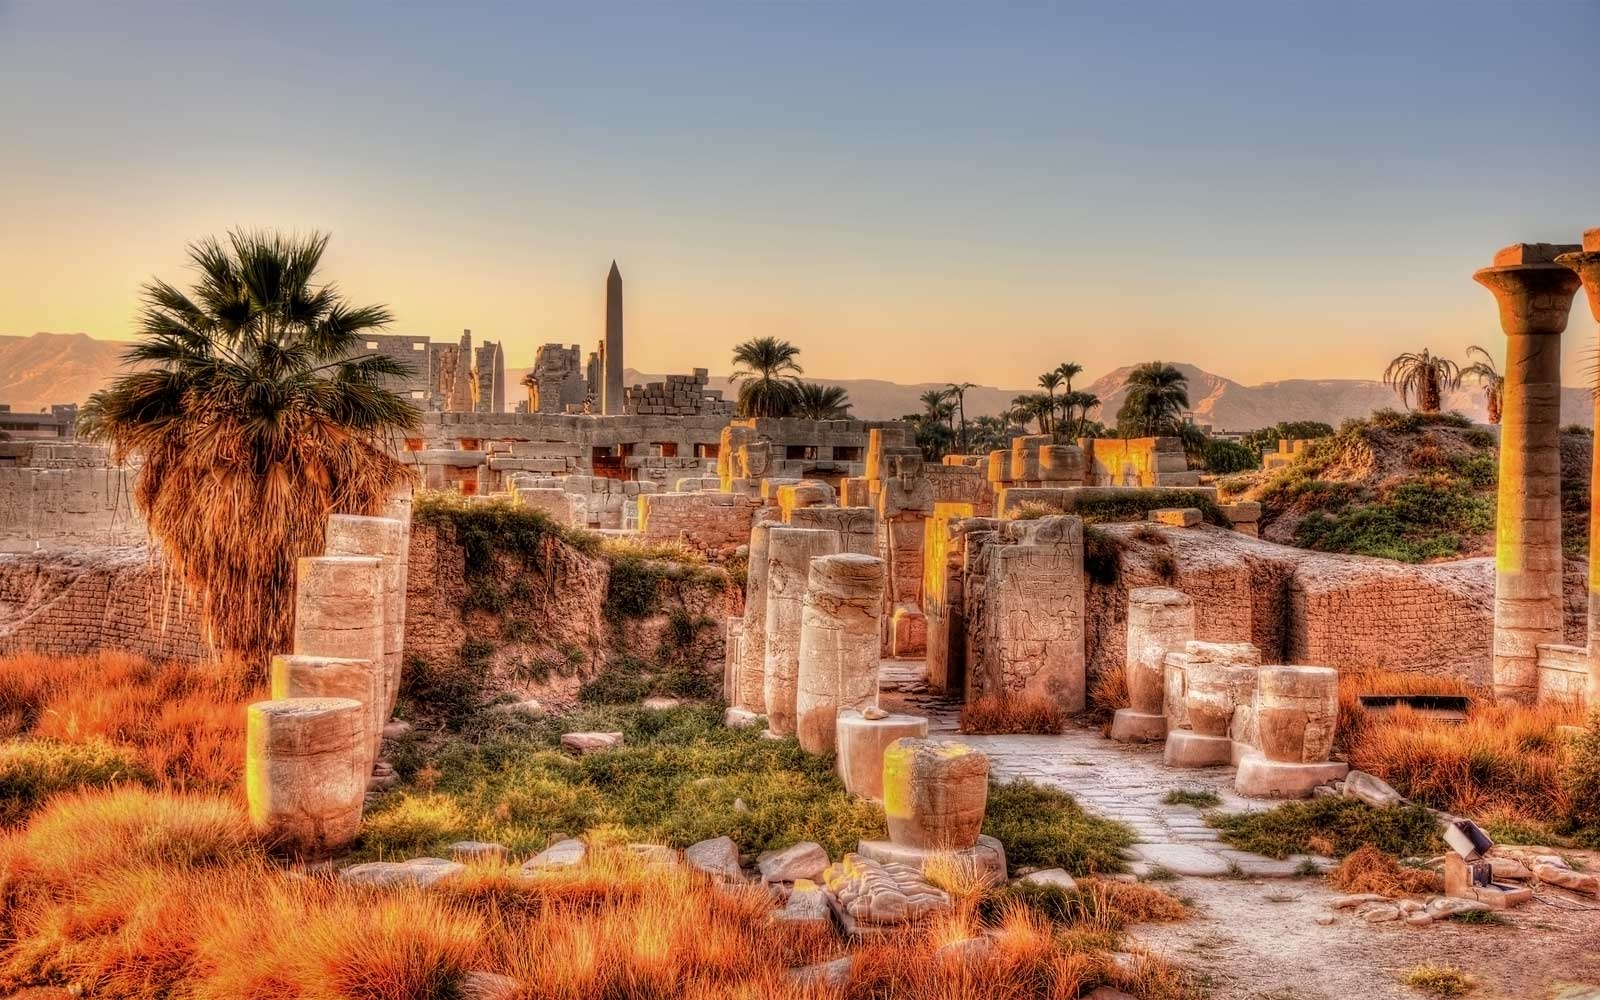 View of the Karnak temple in the evening, Egypt